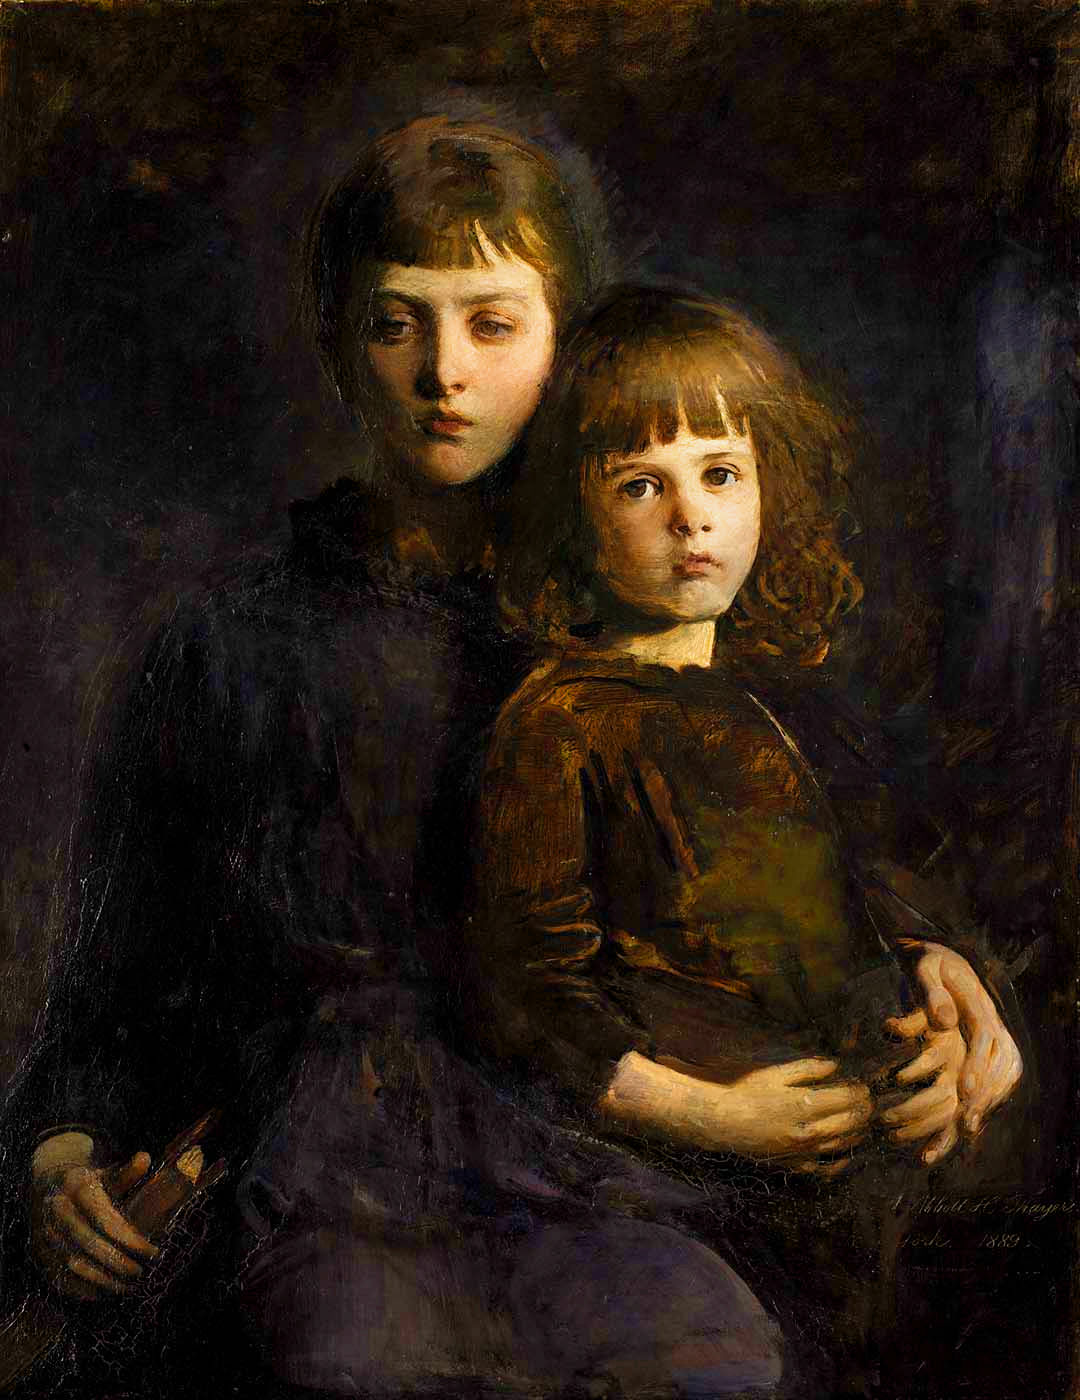 Abbott Handerson Thayer - Brother and Sister